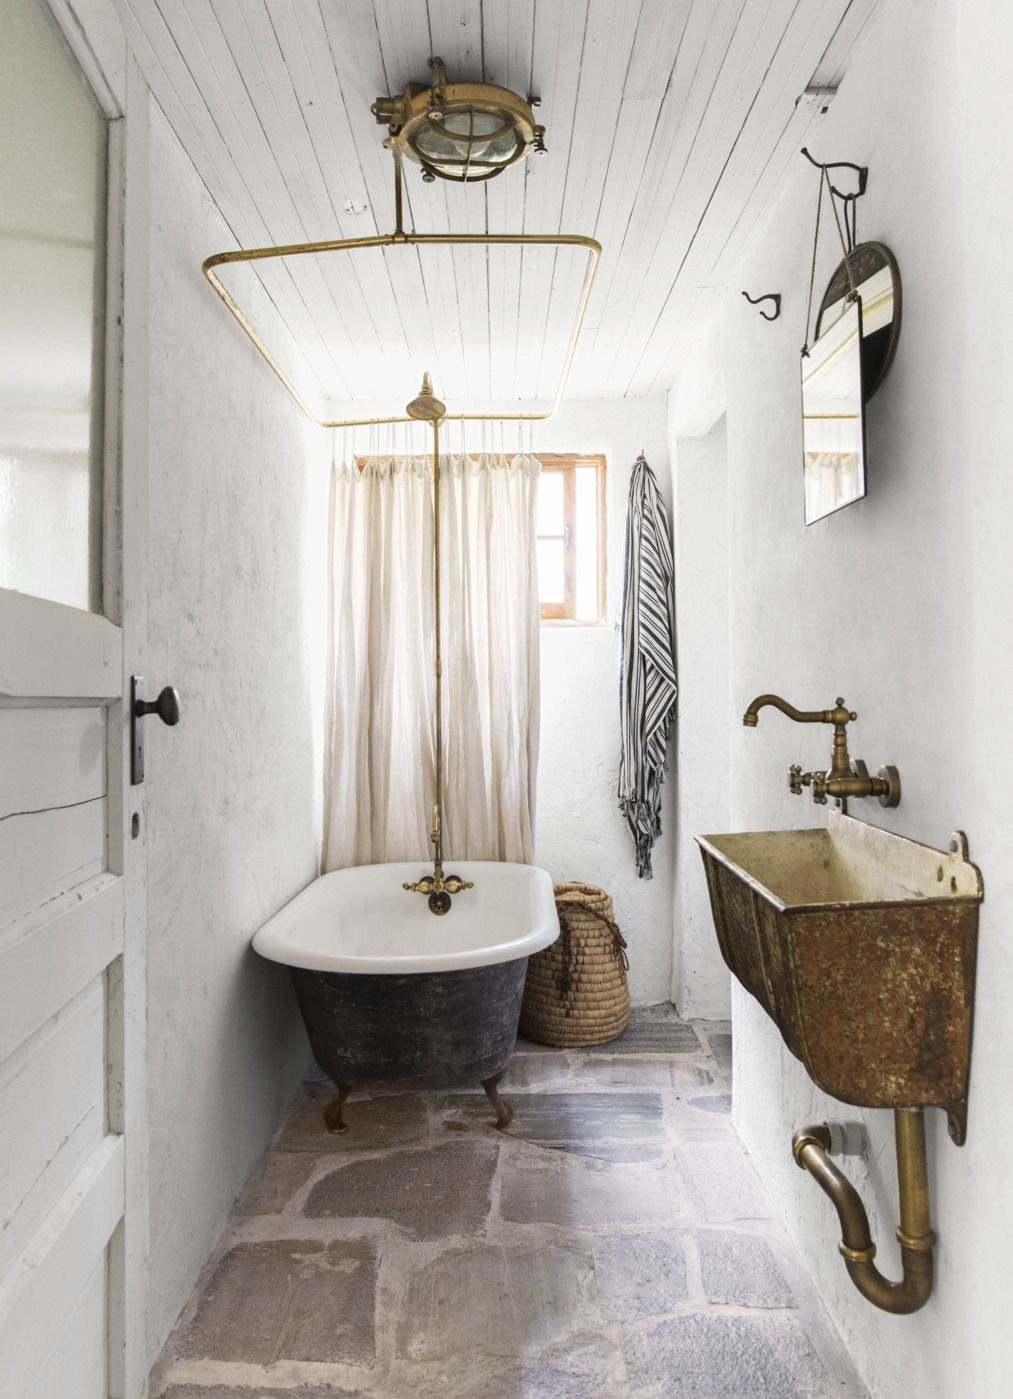 Decorating Ideas for A Bathroom Best Of 100 Best Bathroom Decorating Ideas Decor & Design